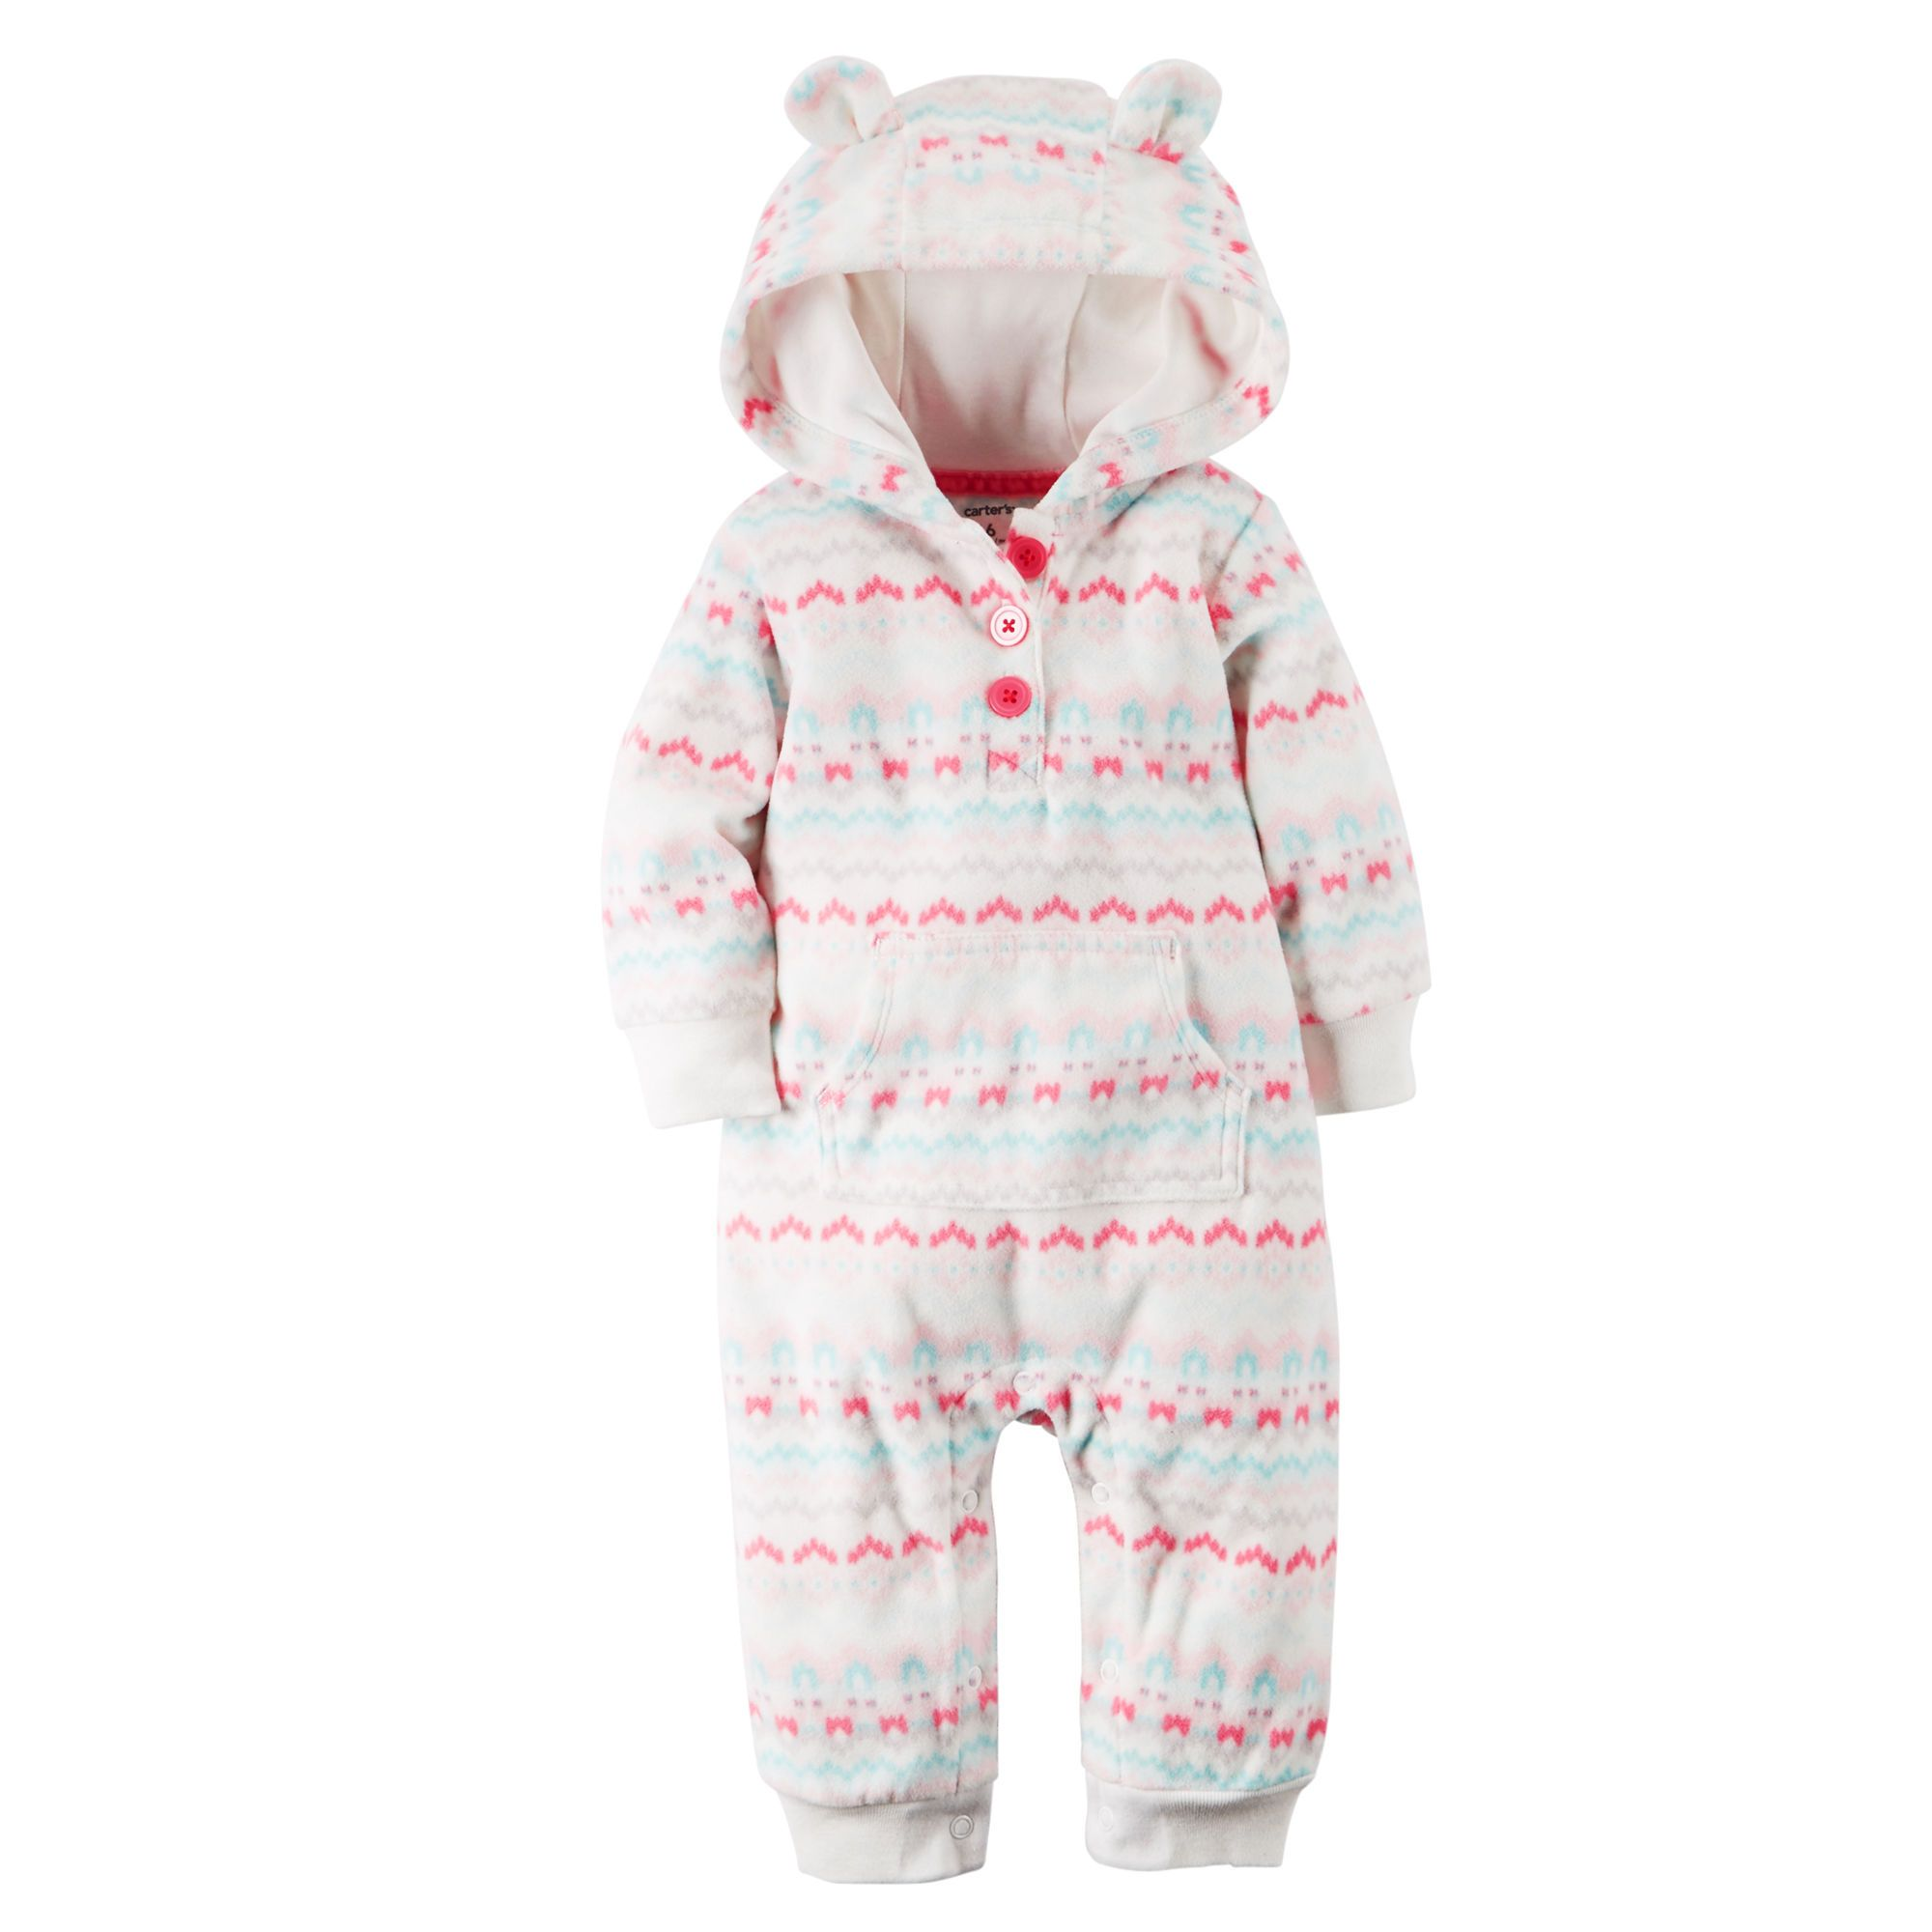 9c321eda276fc Baby Girl Hooded Fleece Jumpsuit